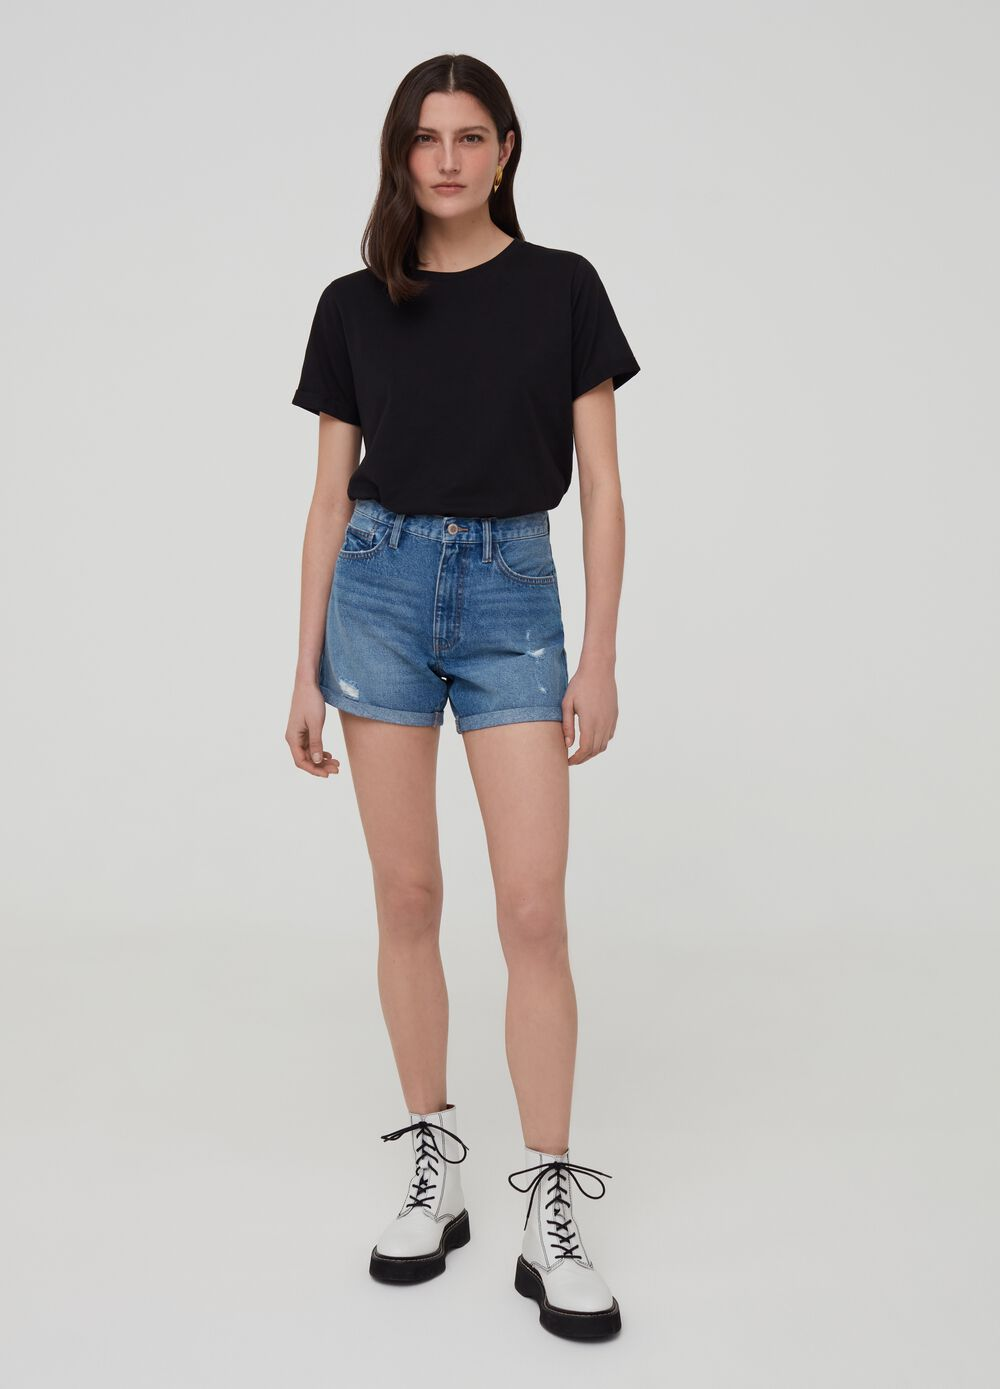 Denim shorts with abrasions